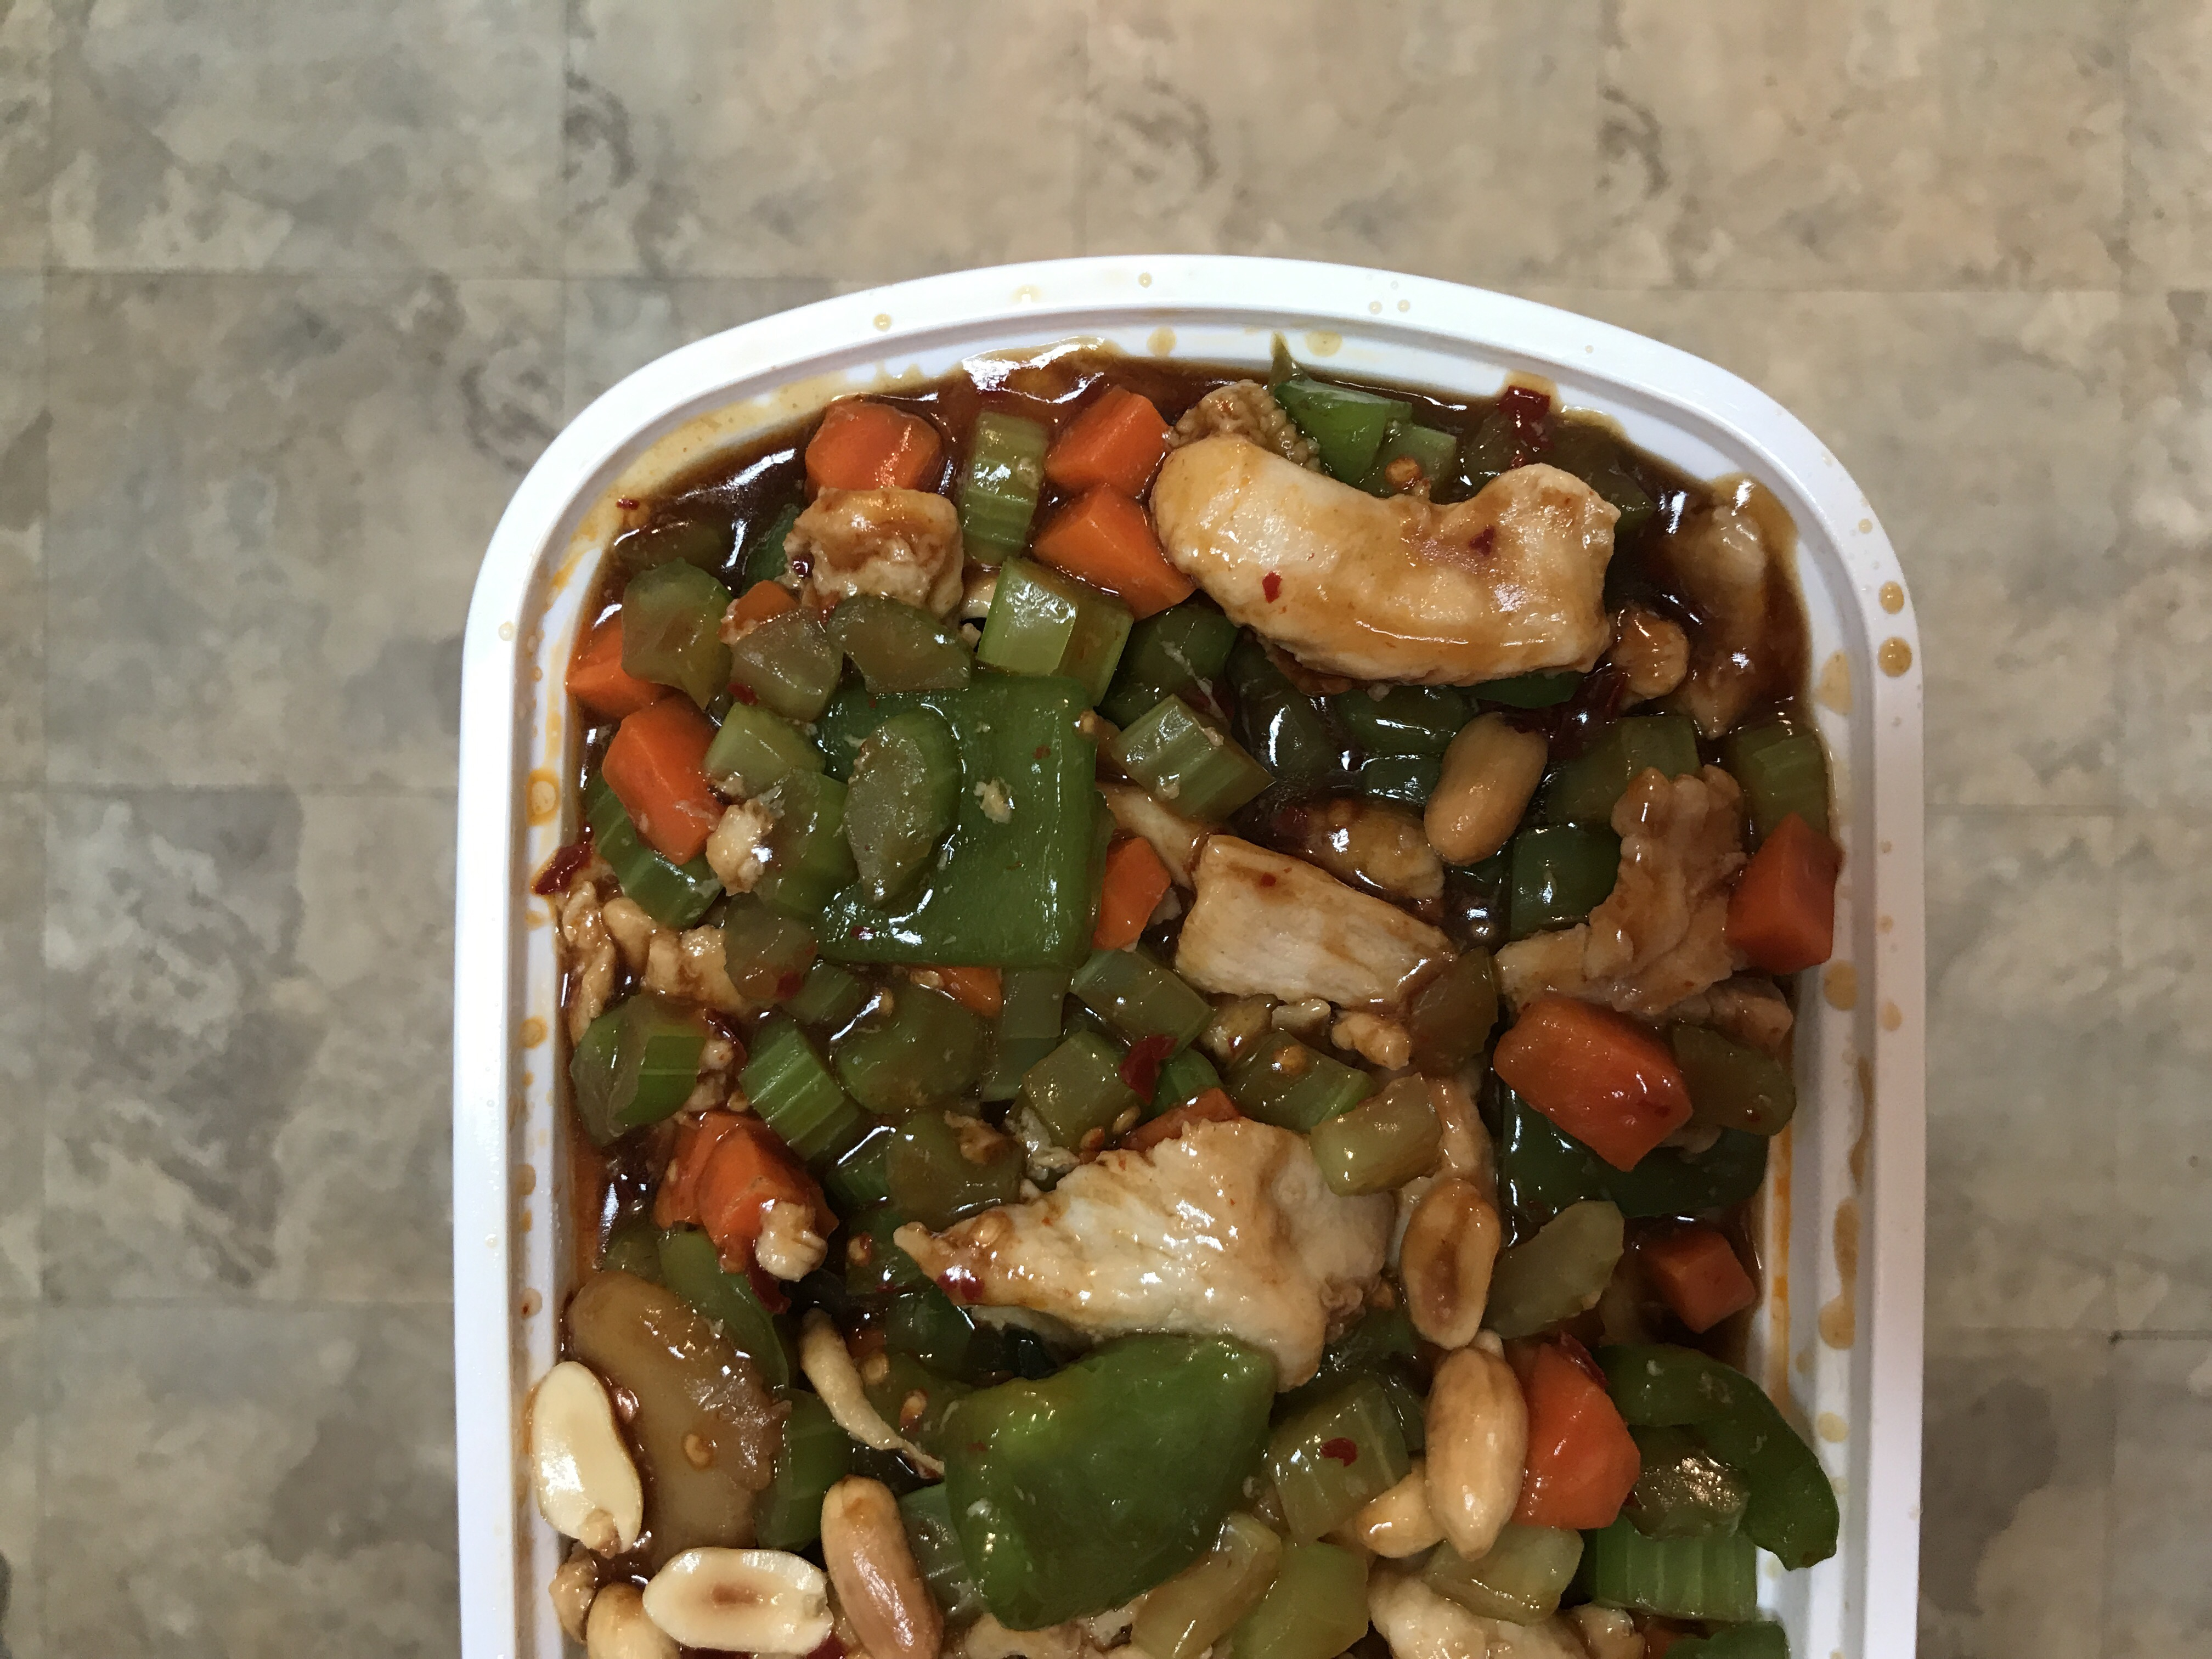 Give Jade Garden A Try And Let Us Know What You Think!